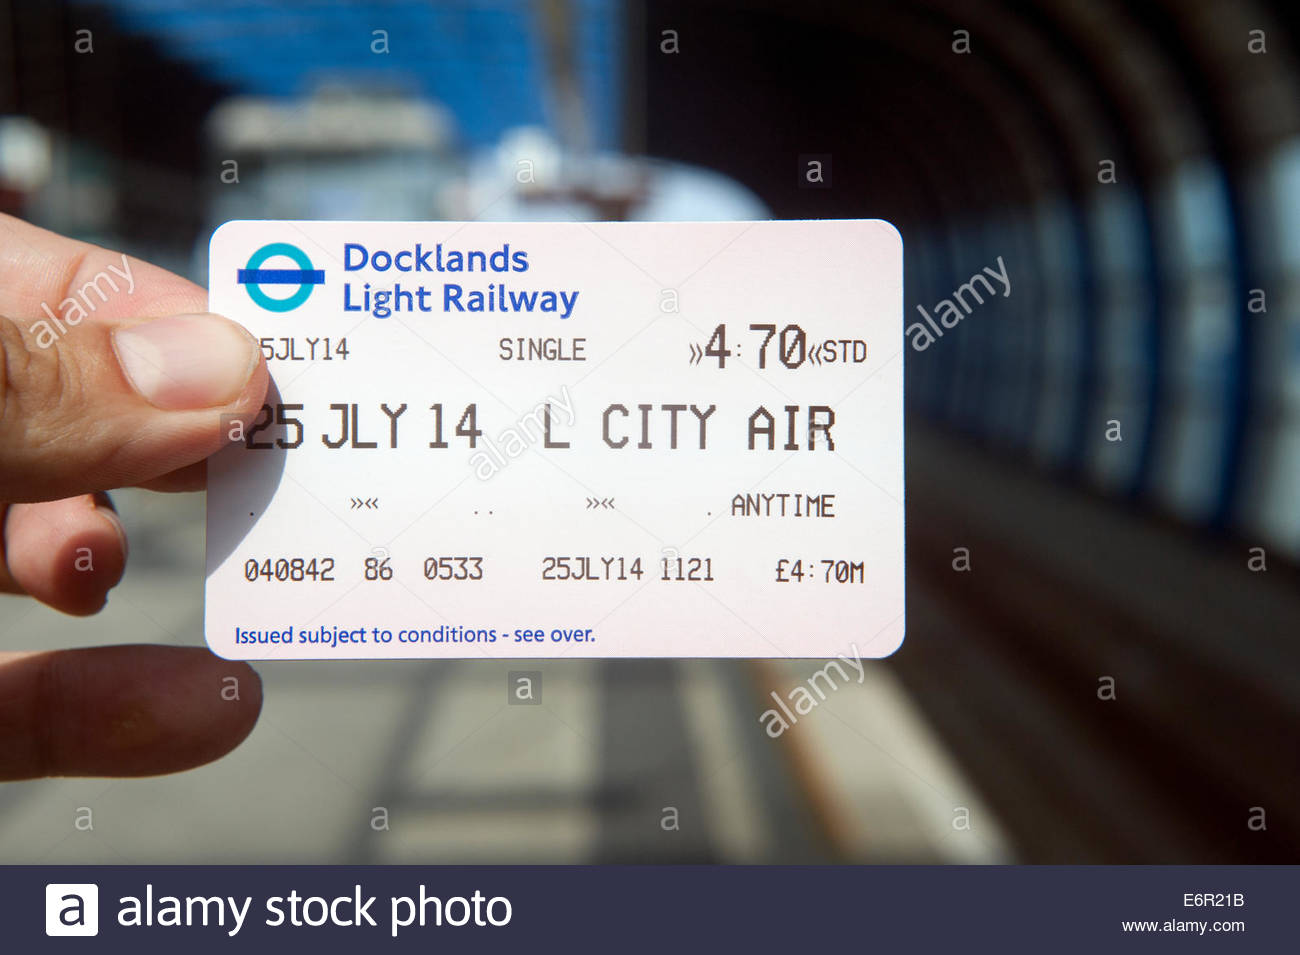 London UK  Ticket for the Docklands light railway. - Stock Image